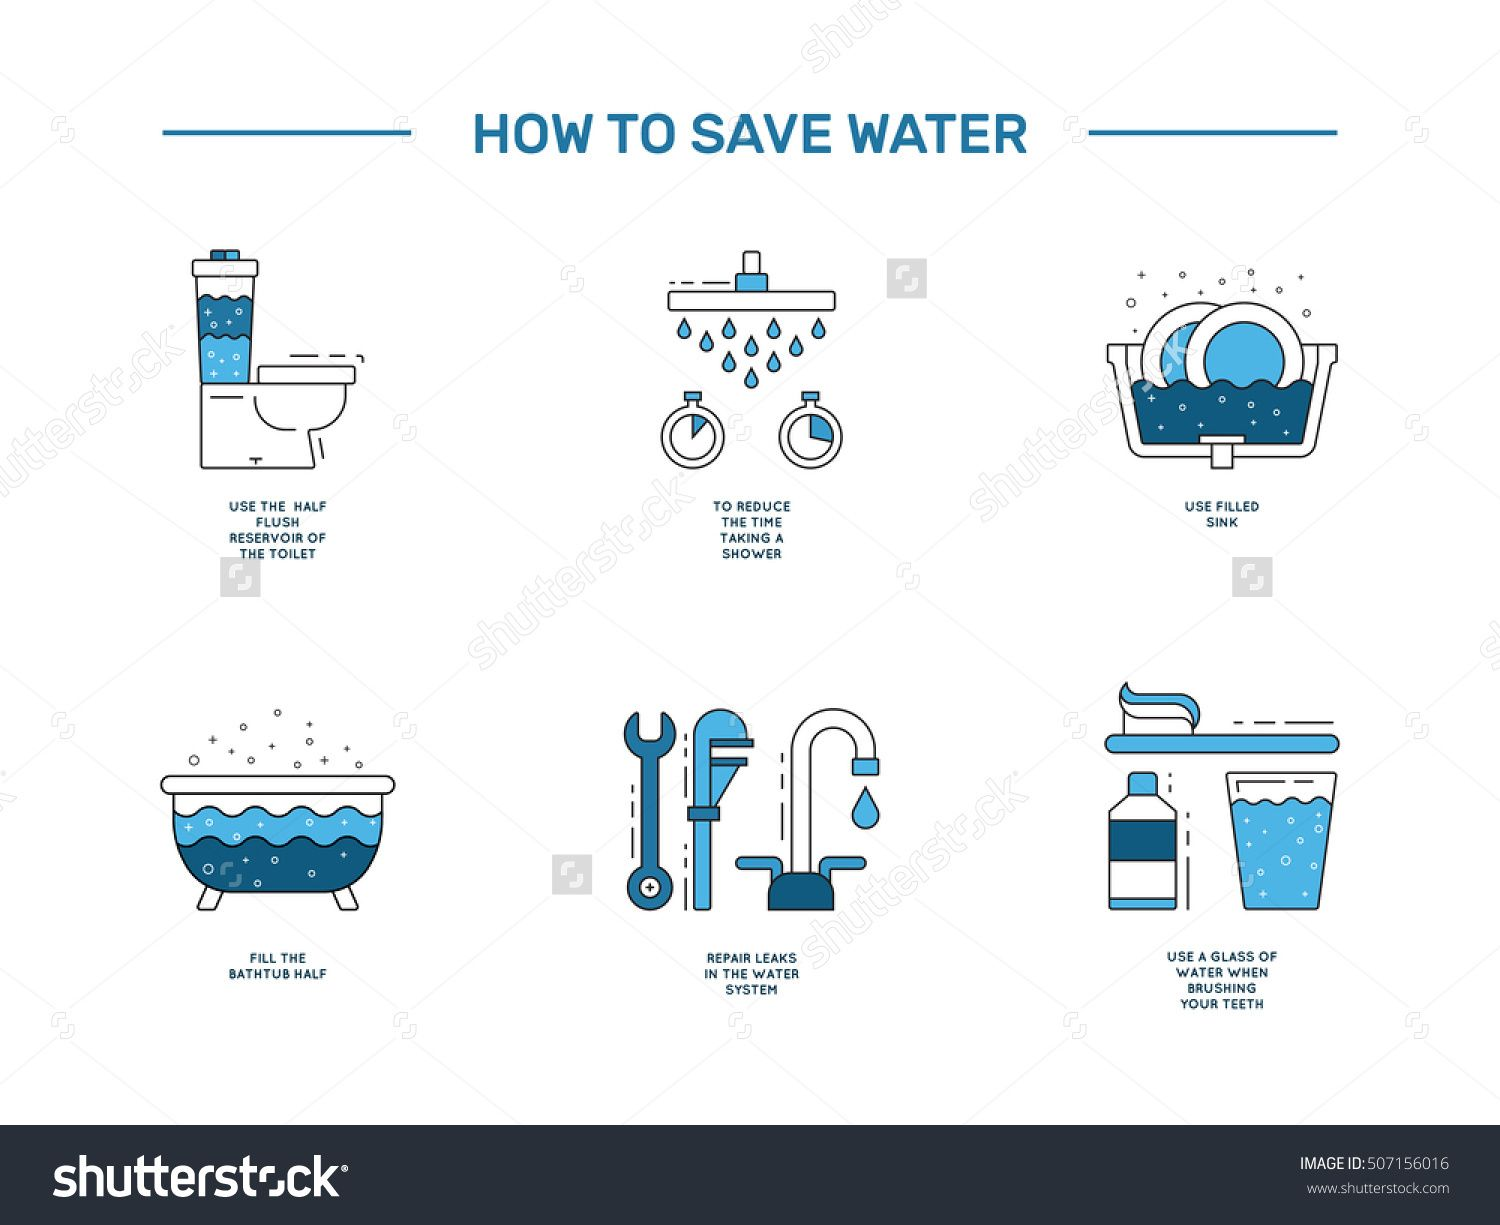 medium resolution of illustration with tips on saving water consumption by man in a house to reduce financial costs and reduce the amount of accounts with water consumption